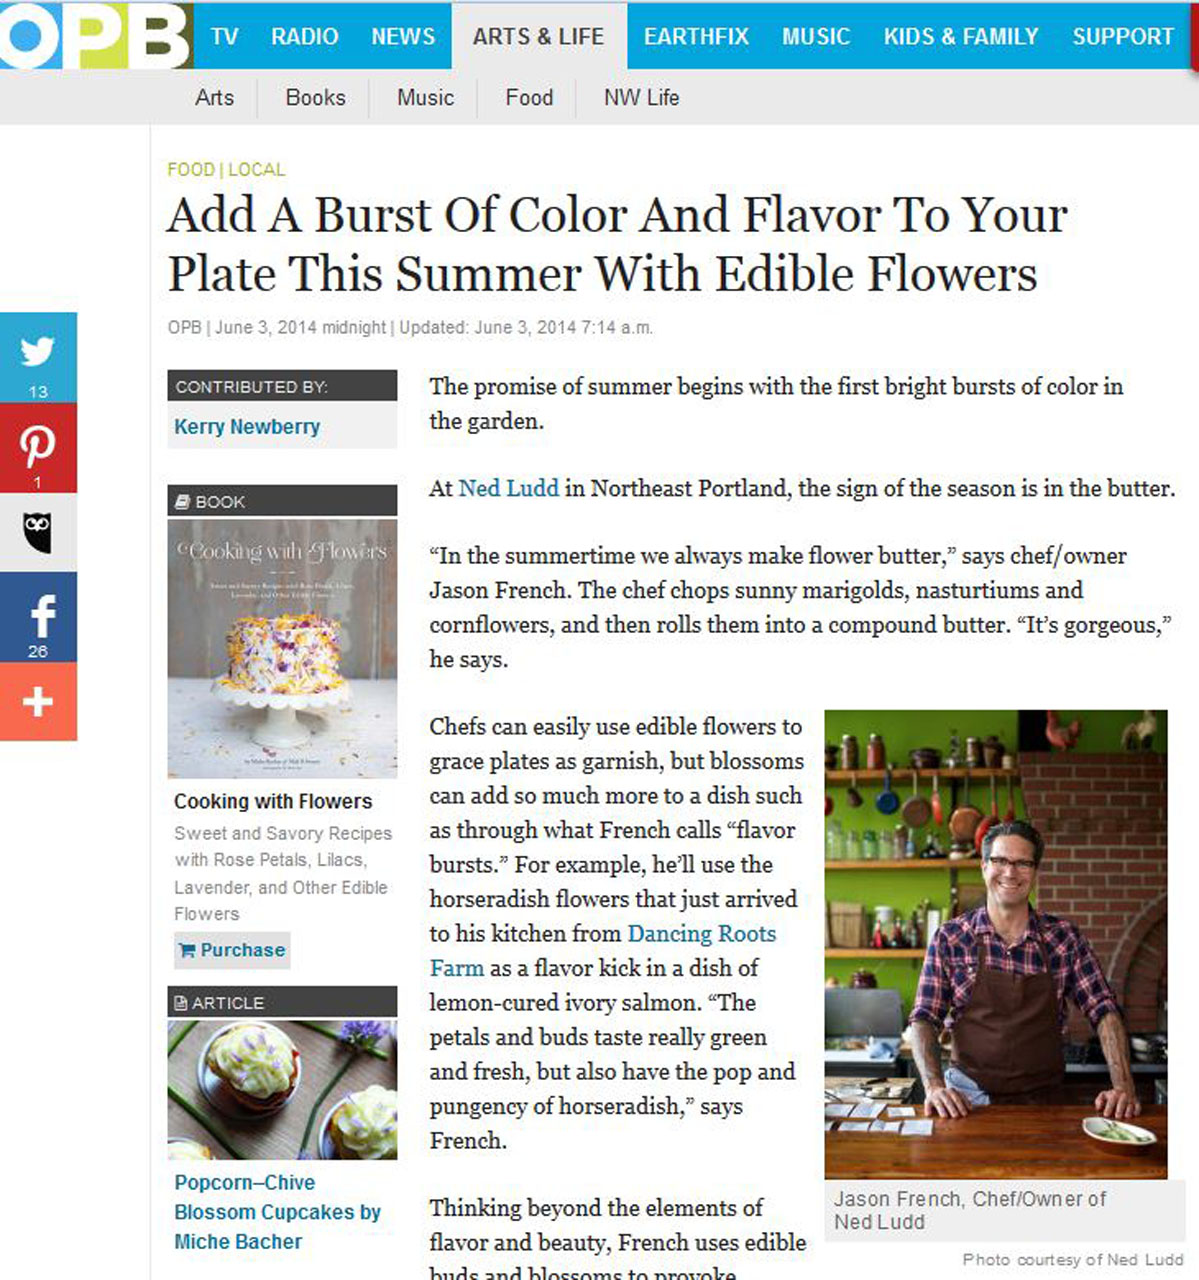 Add a burst of color and flavor to your plate this summer with edible flowers